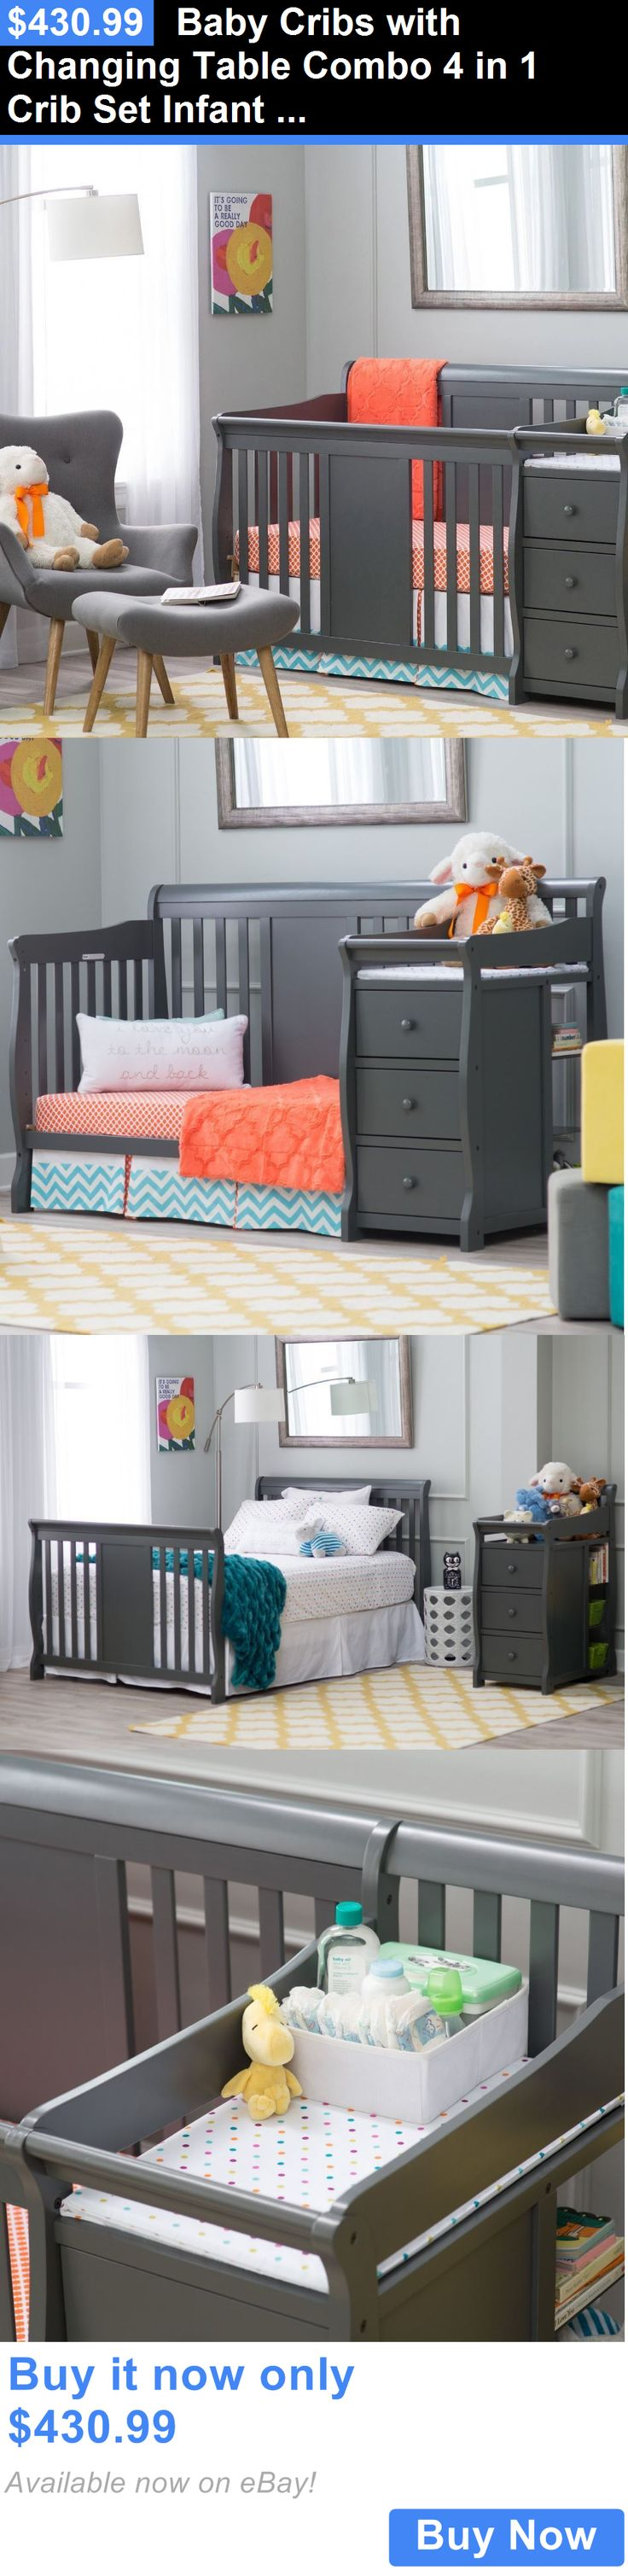 Baby Nursery: Baby Cribs With Changing Table Combo 4 In 1 Crib Set Infant Nursery Furniture BUY IT NOW ONLY: $430.99